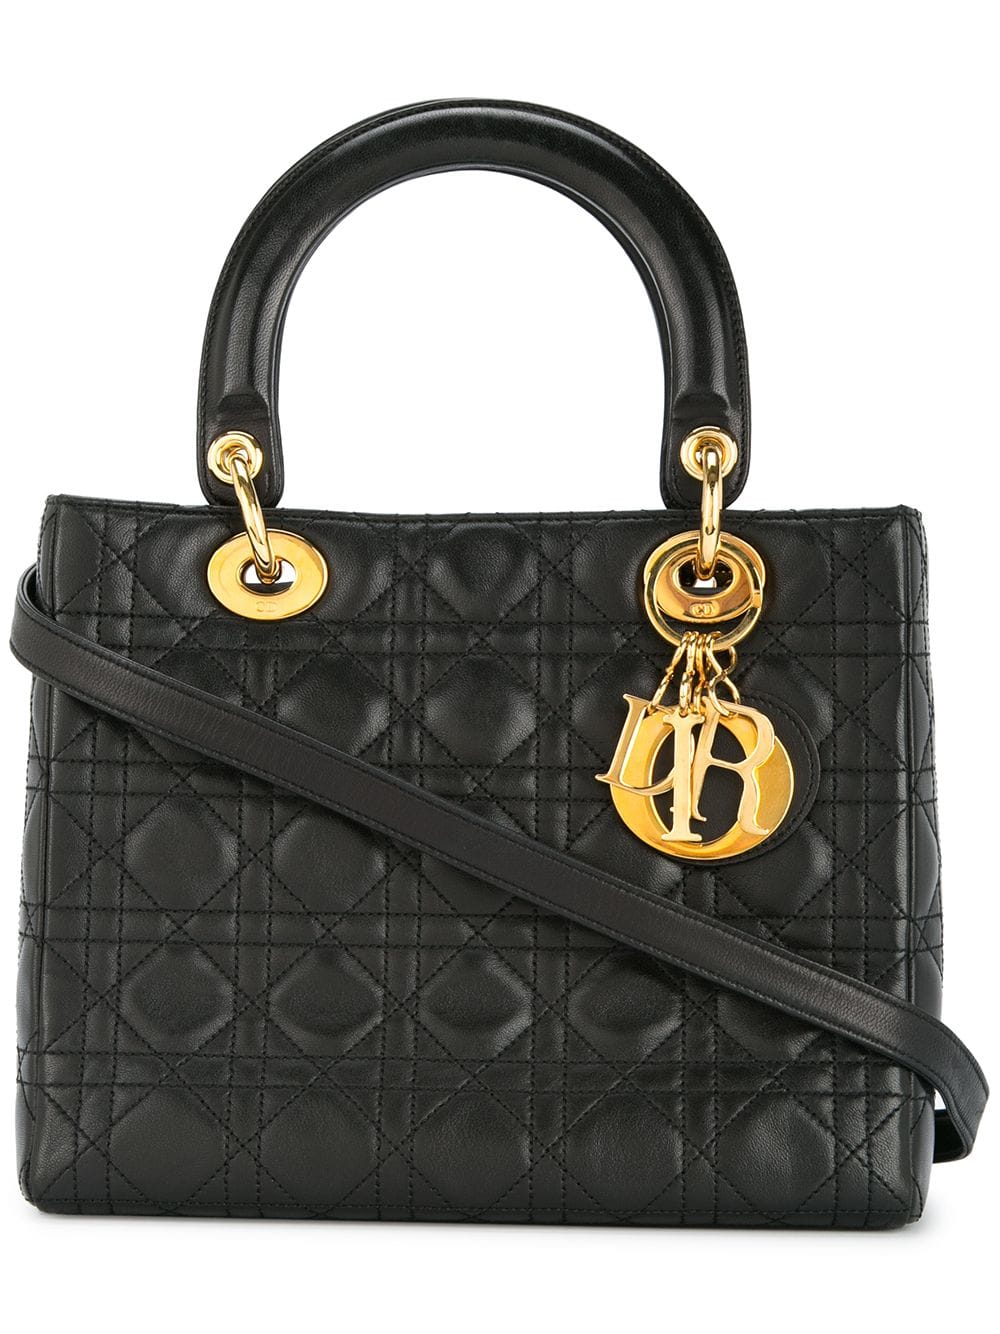 dior-pre-owned-lady-dior-cannage-bag